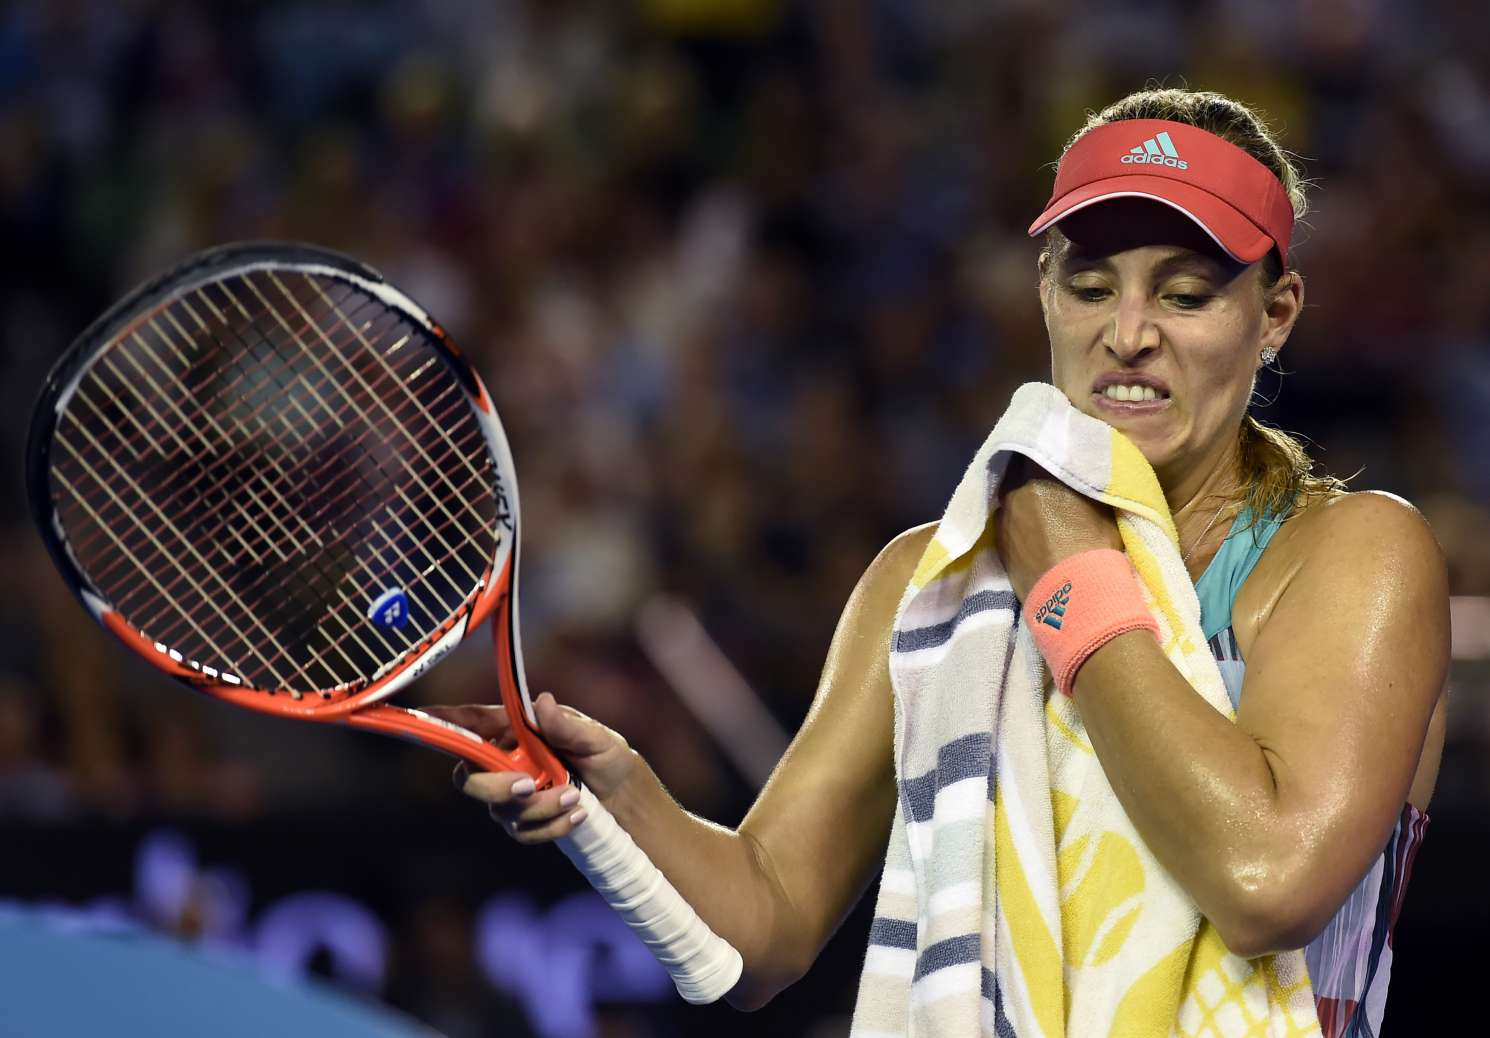 Angelique Kerber 2016 : Angelique Kerber vs Serena Williams: Womens singles final at the Australian Open in Melbourne-06